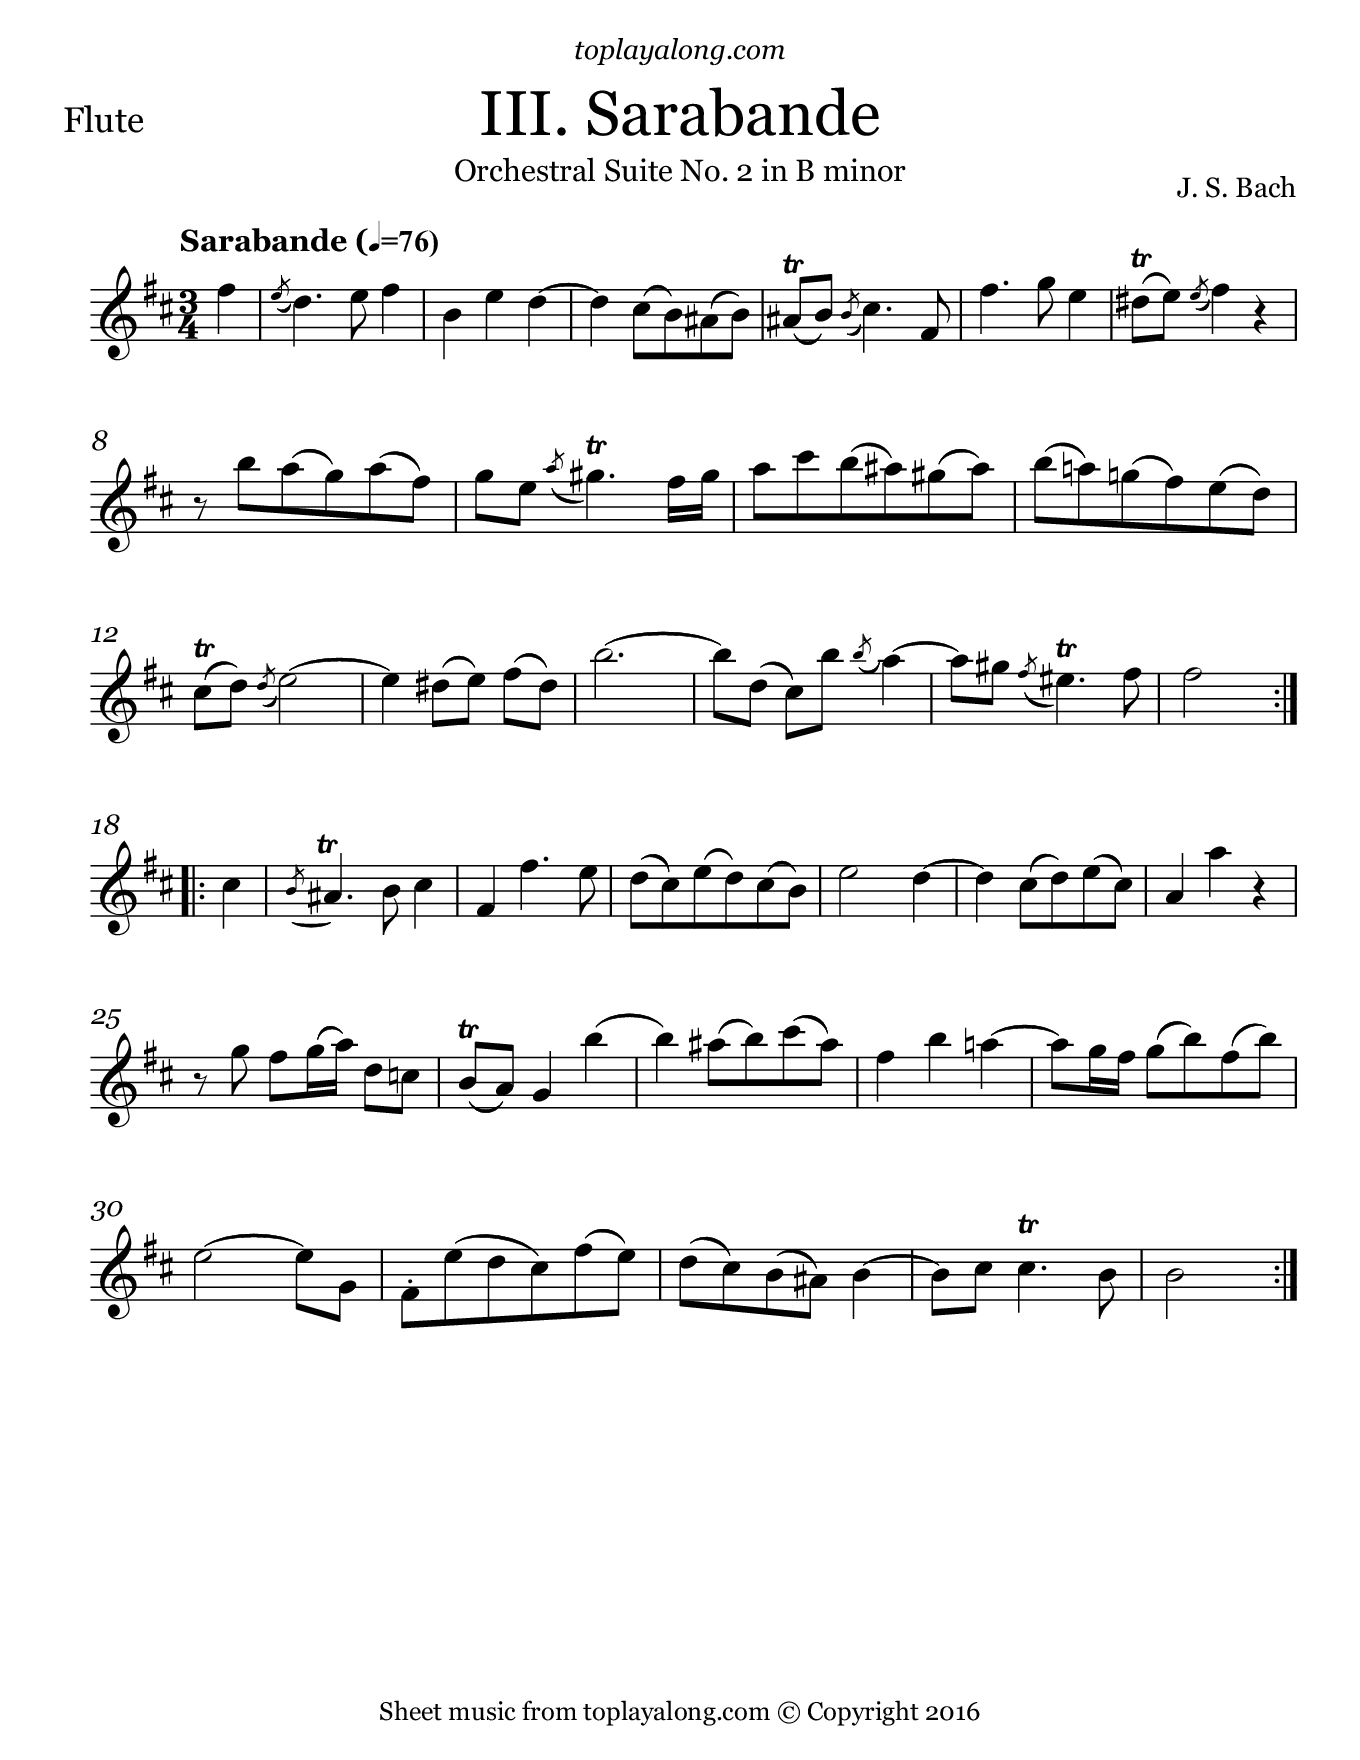 Orchestral Suite No. 2 (III. Sarabande) by J. S. Bach. Sheet music for Flute, page 1.